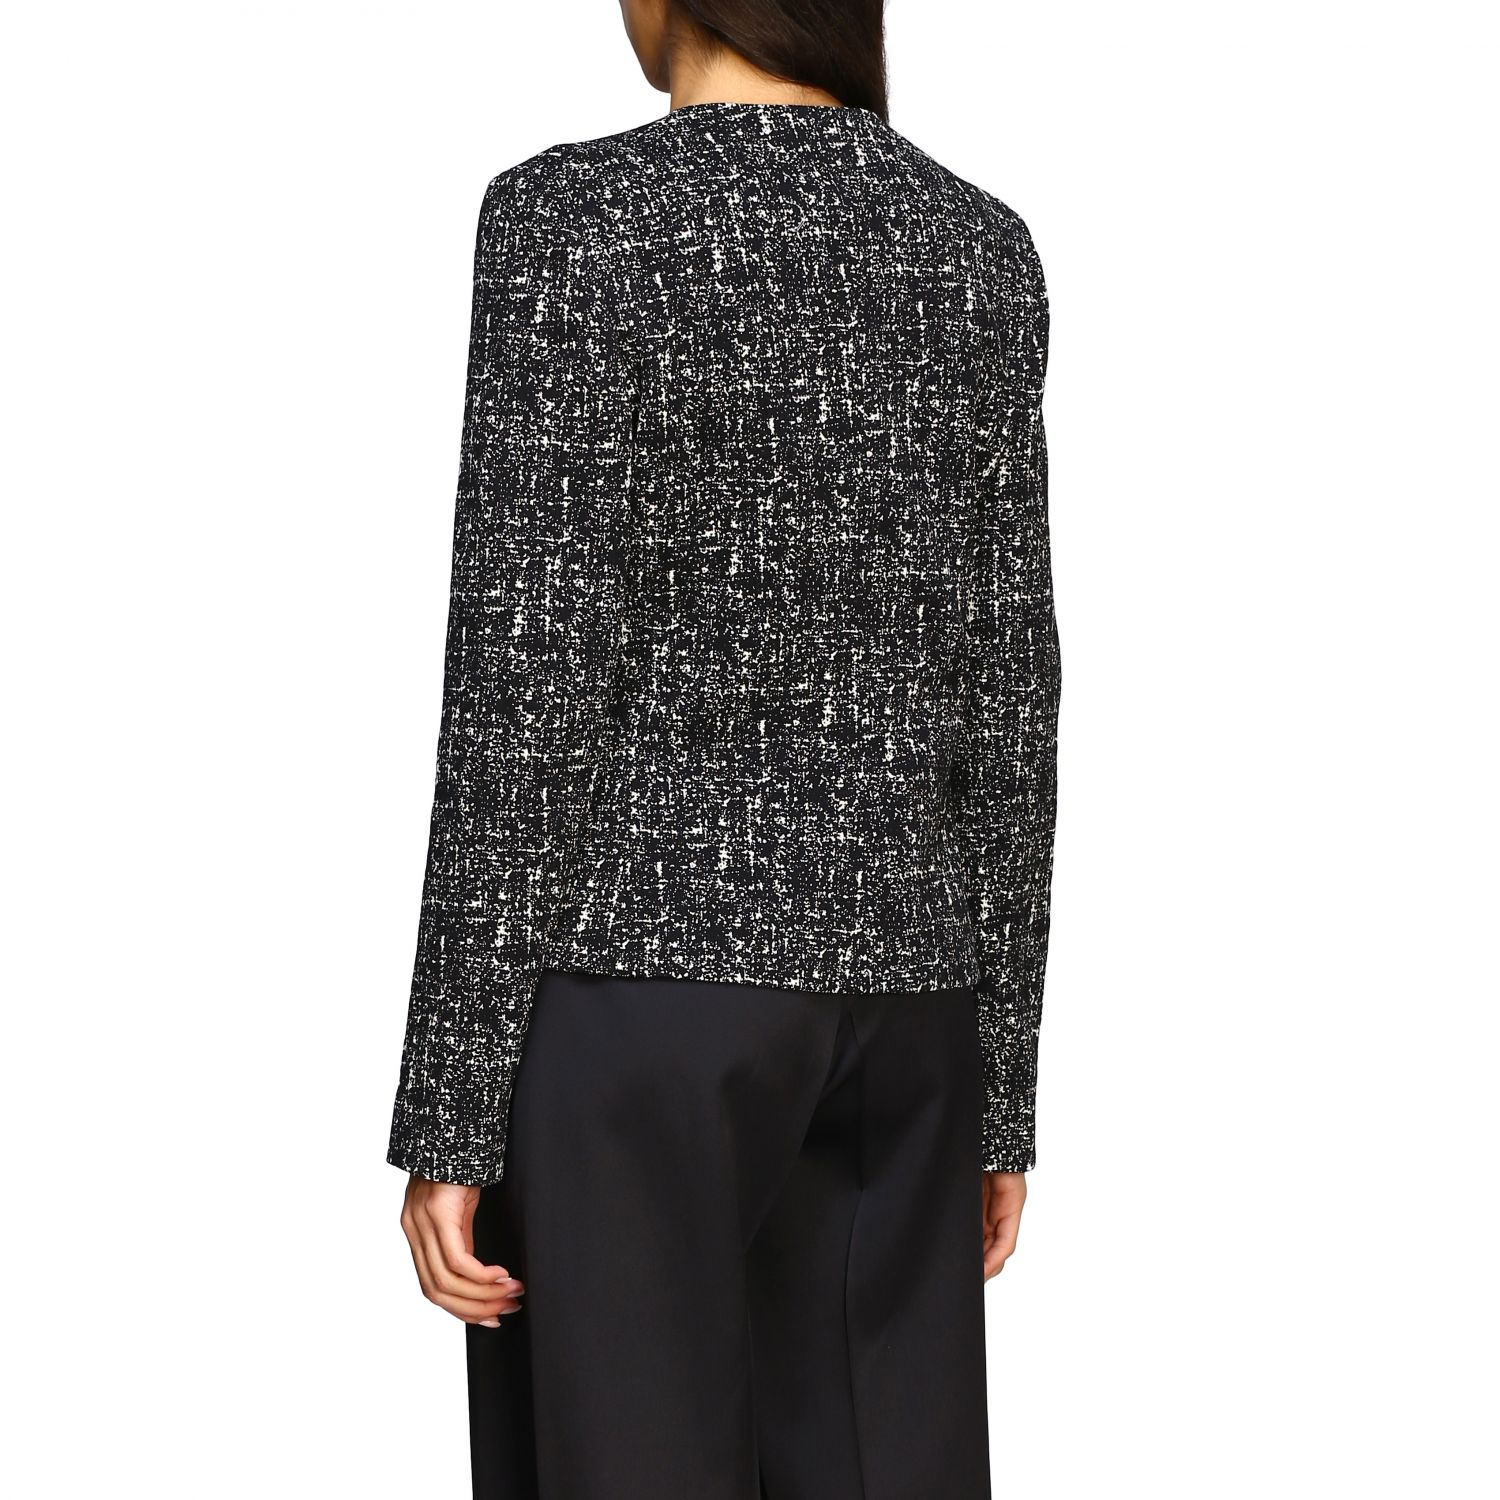 Bottega Veneta jacket in blend bouclé wool black 3